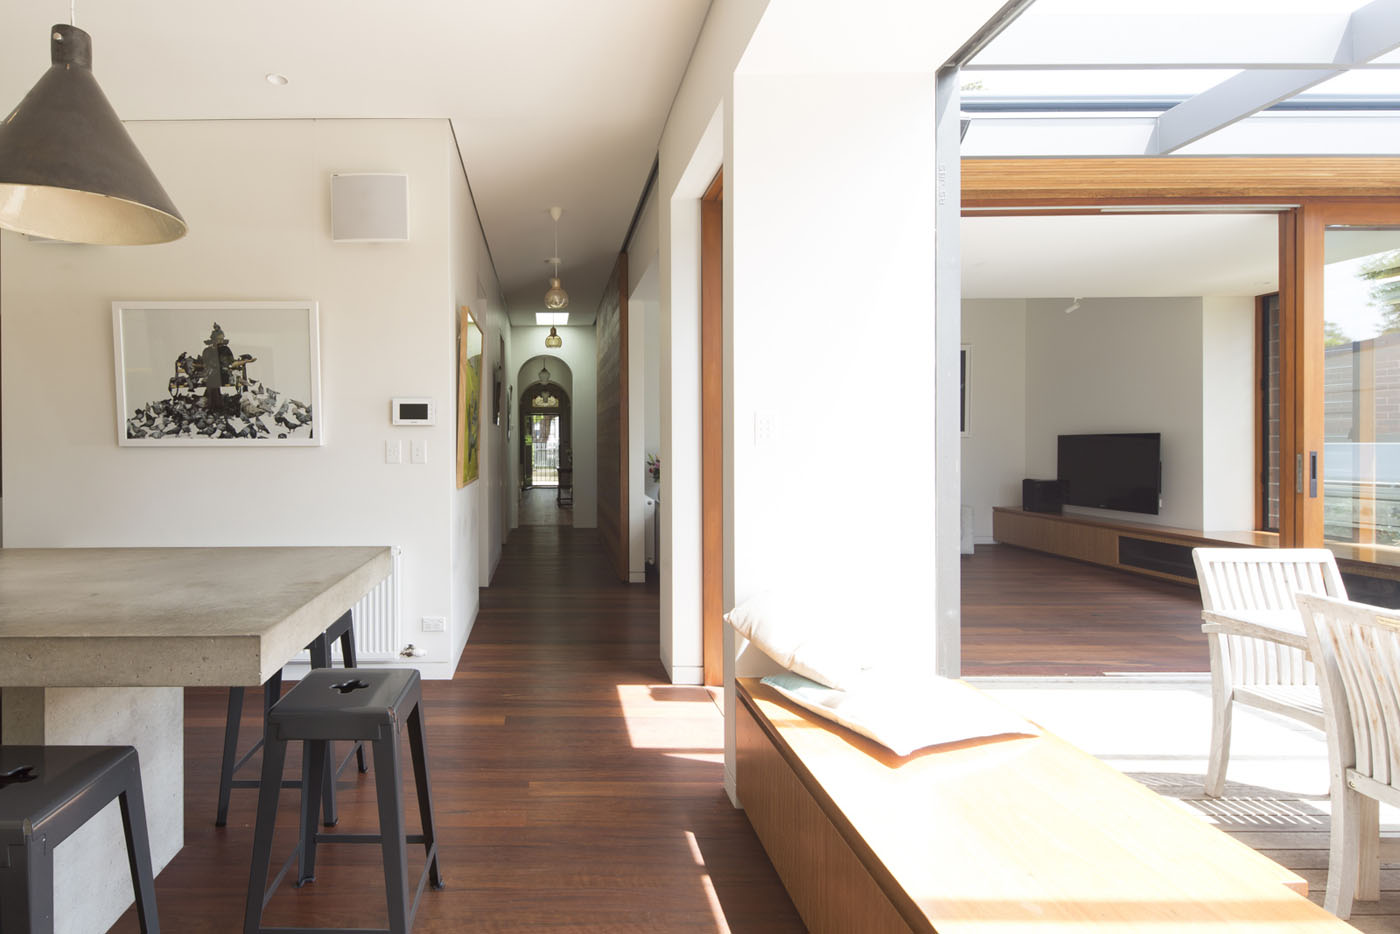 Denney House by Sam Crawford Architects, view to the corridor with arched openings